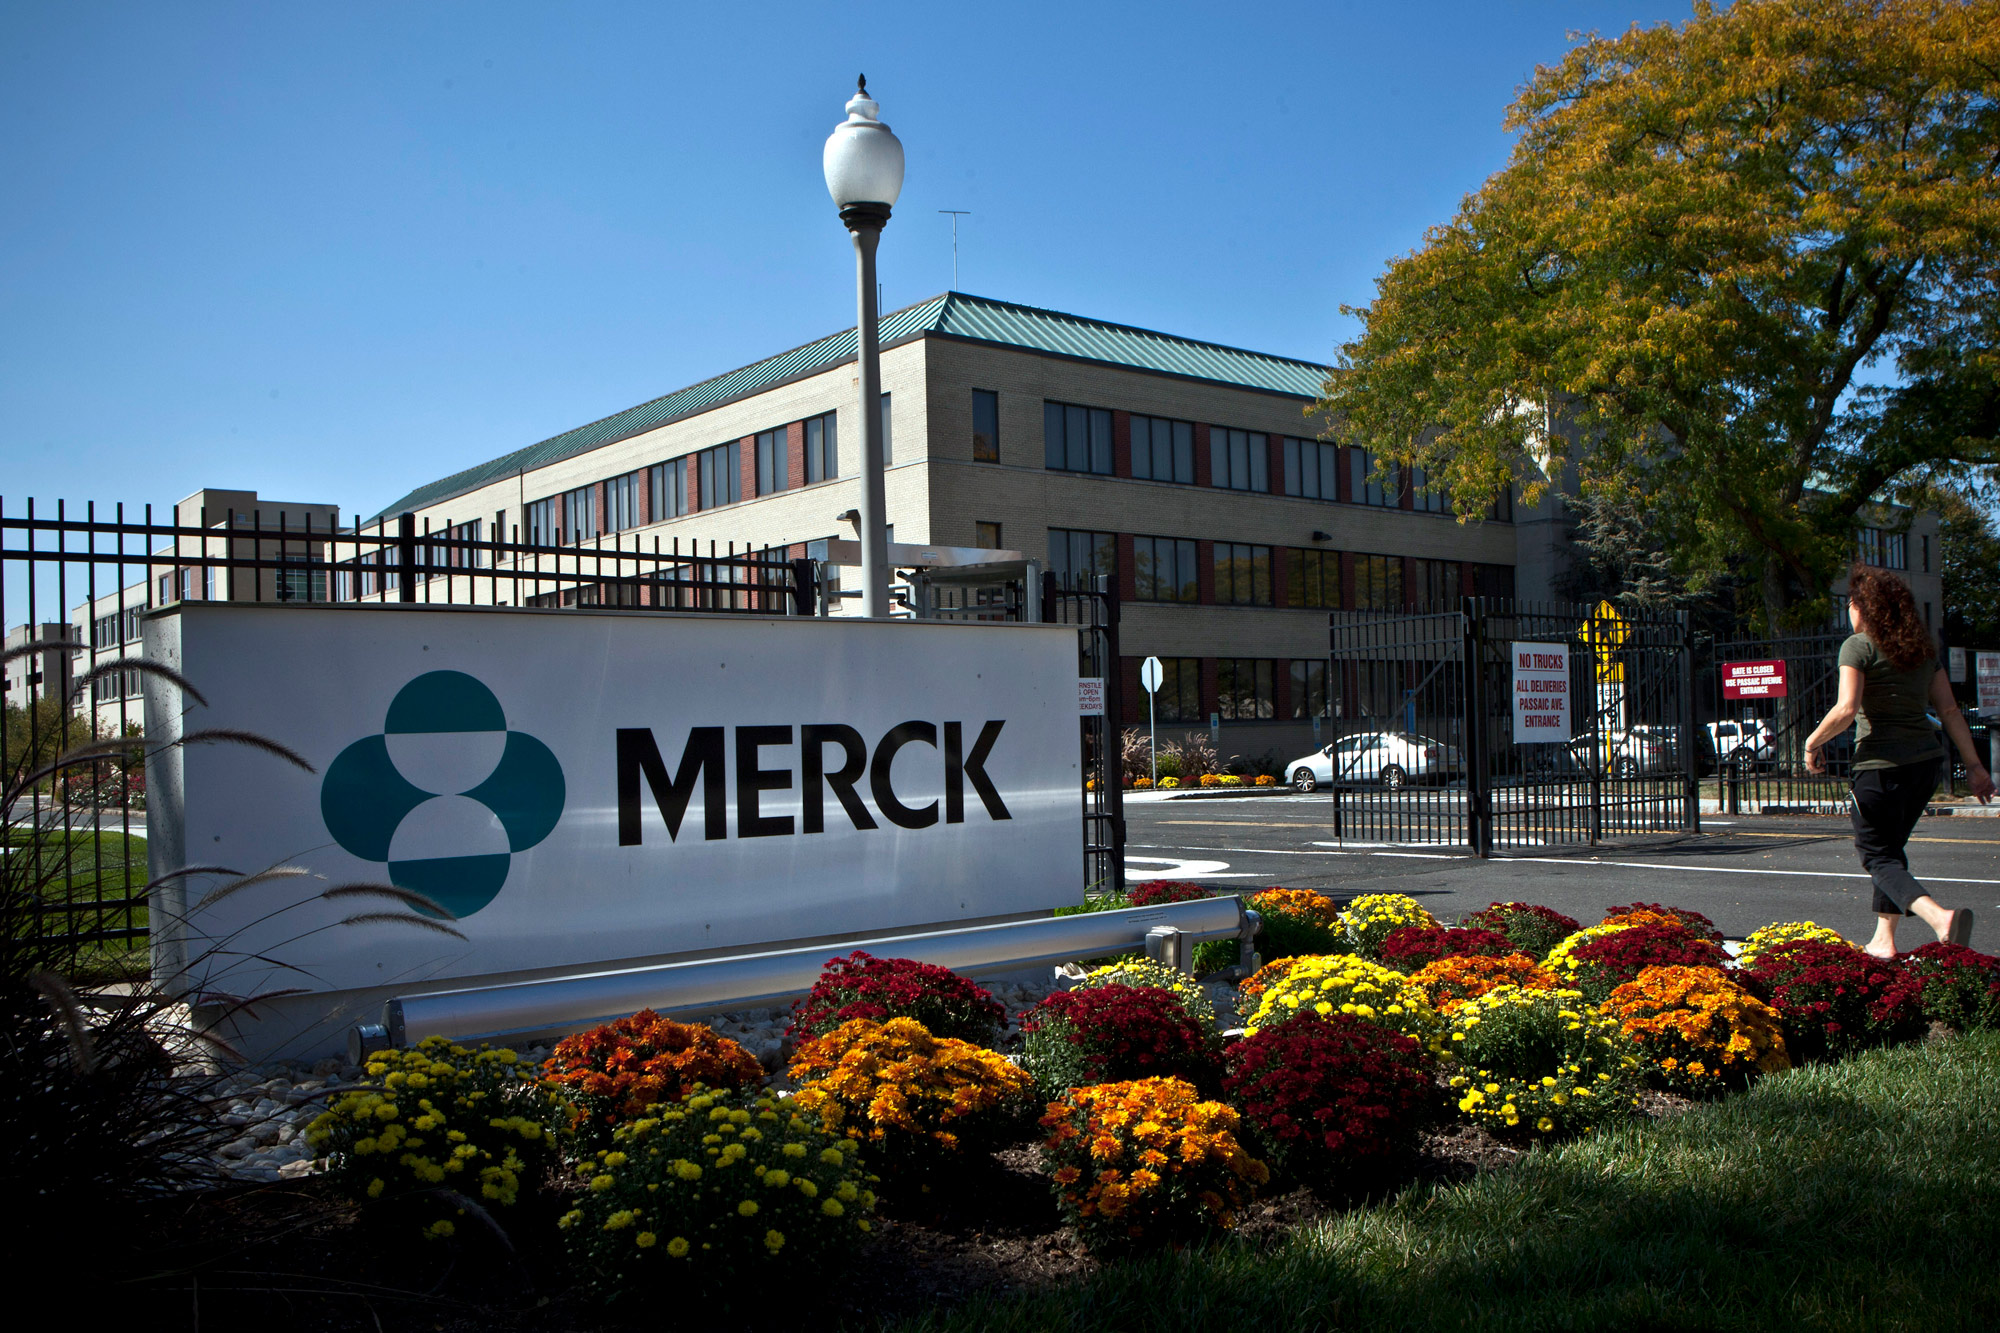 A Merck sign stands in front of the company's building on October 2, 2013, in Summit, New Jersey.